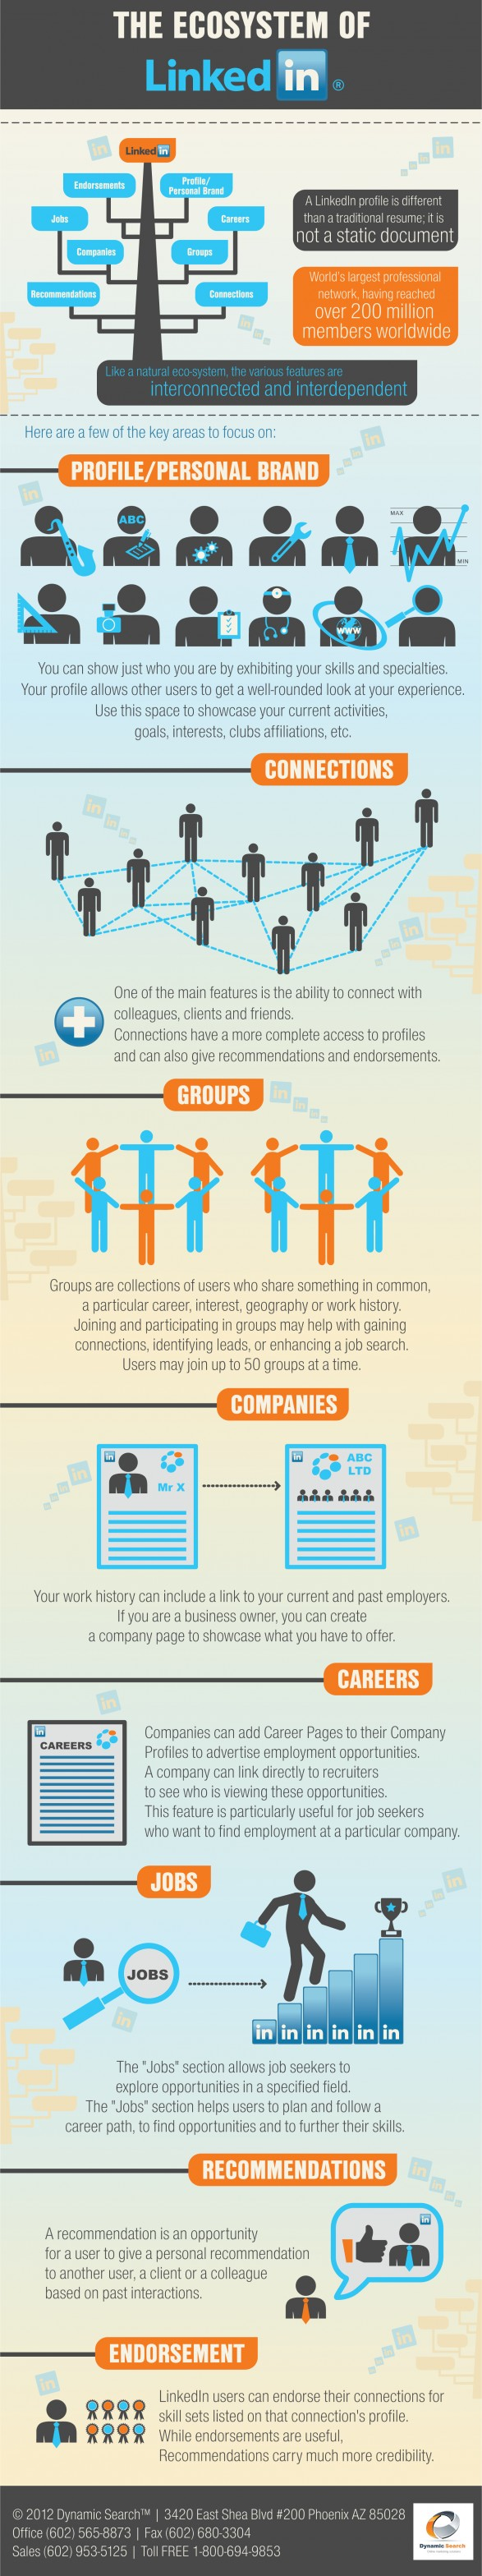 the-ecosystem-of-linkedin_51a3eb59e1543_w587